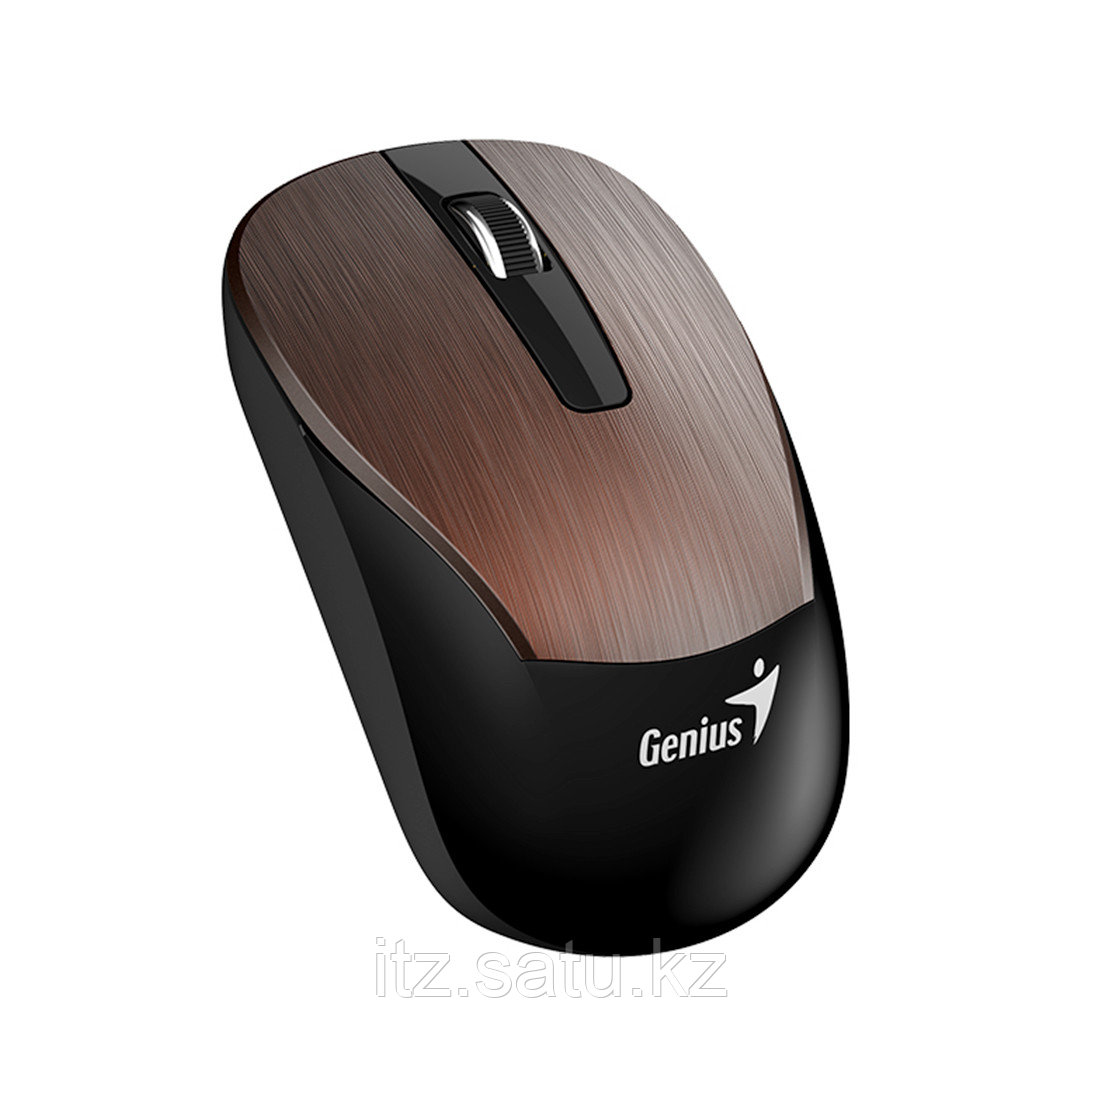 Компьютерная мышь Genius ECO-8015 Chocolate